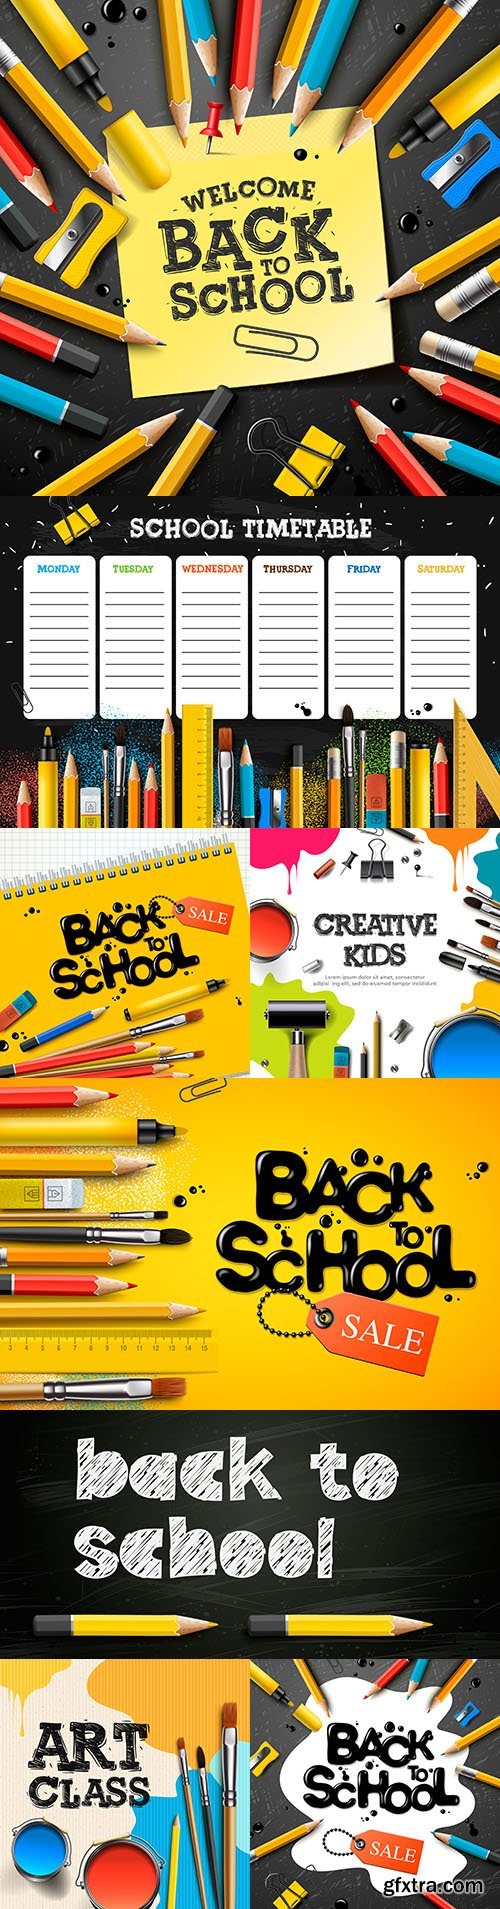 Back to school and accessories collection illustration 46